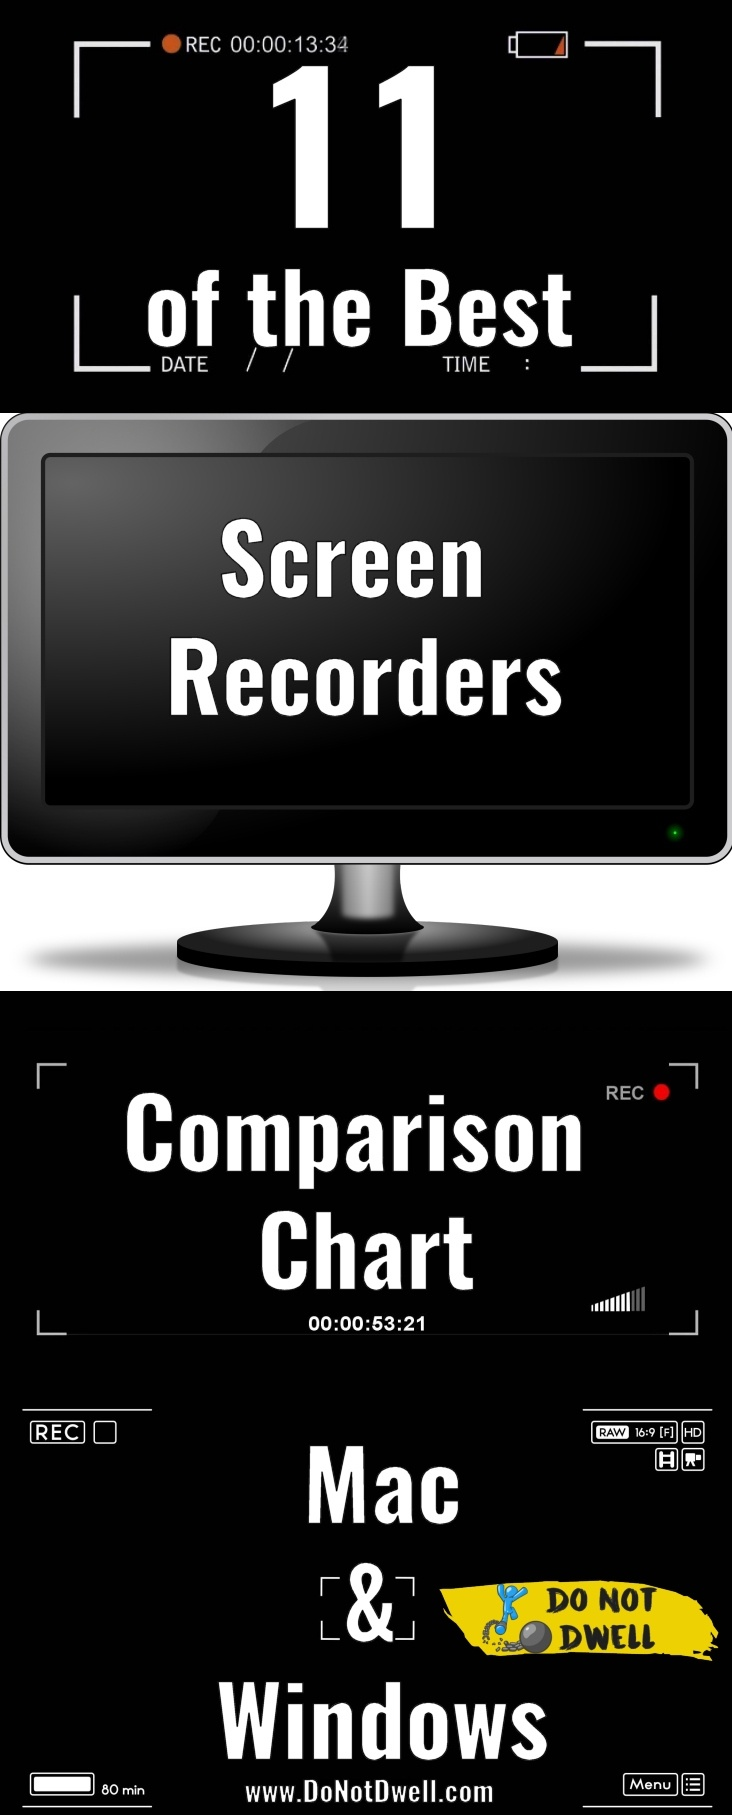 Best Screen Recording Software Comparison: Compare 11 of the best screen recording programs side-by-side so you can see which software is better for you. Recommendations and warnings given!